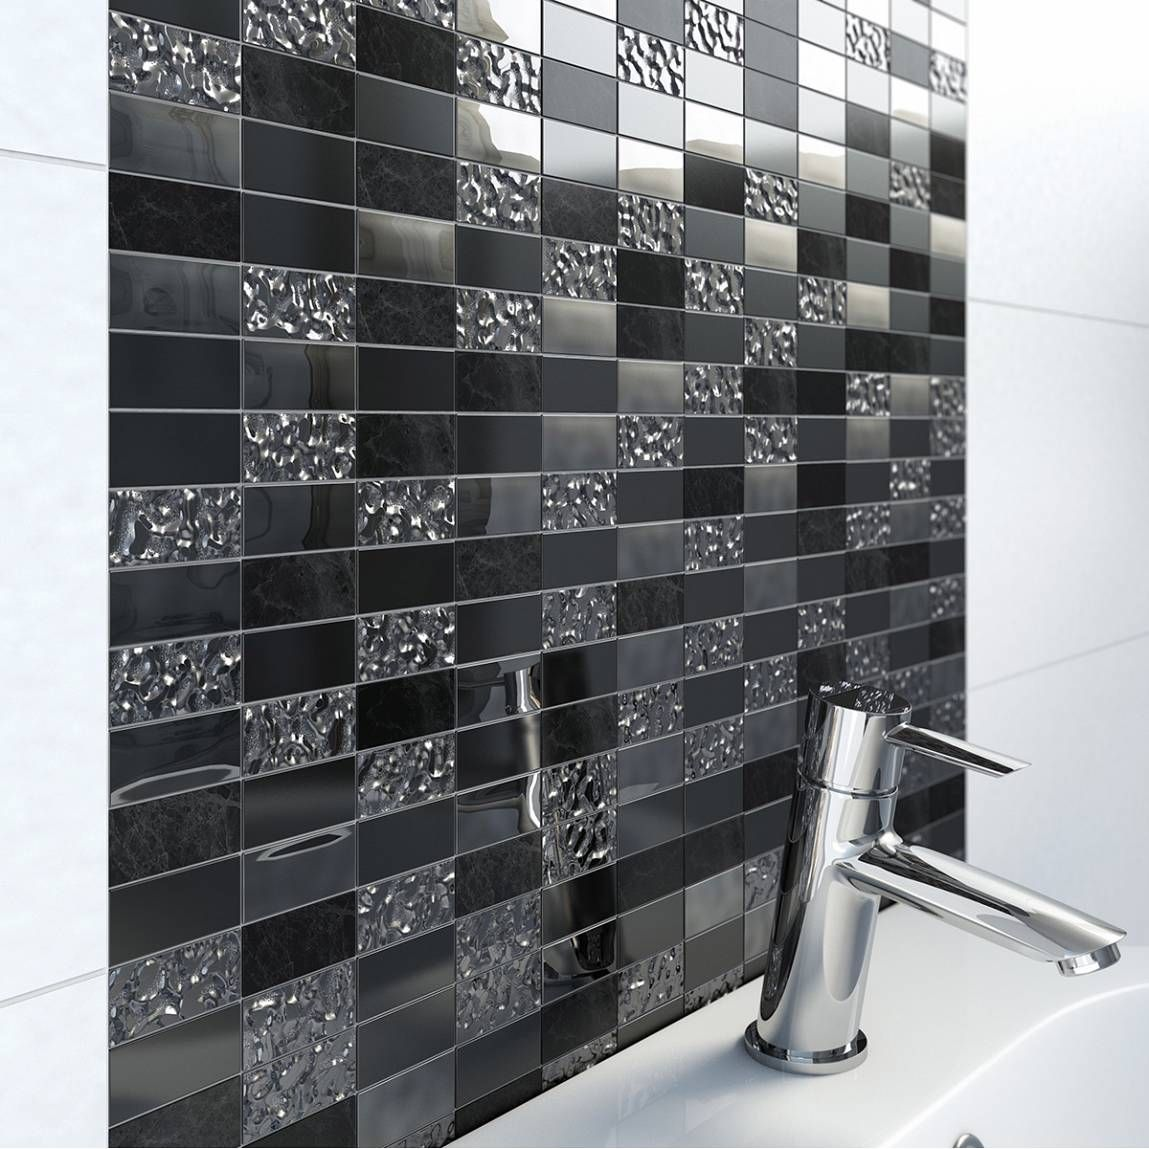 Wickes Kitchen Floor Tiles Wickes Black Silver Leaf Motif Gloss Glass Mosaic Tile Sheet